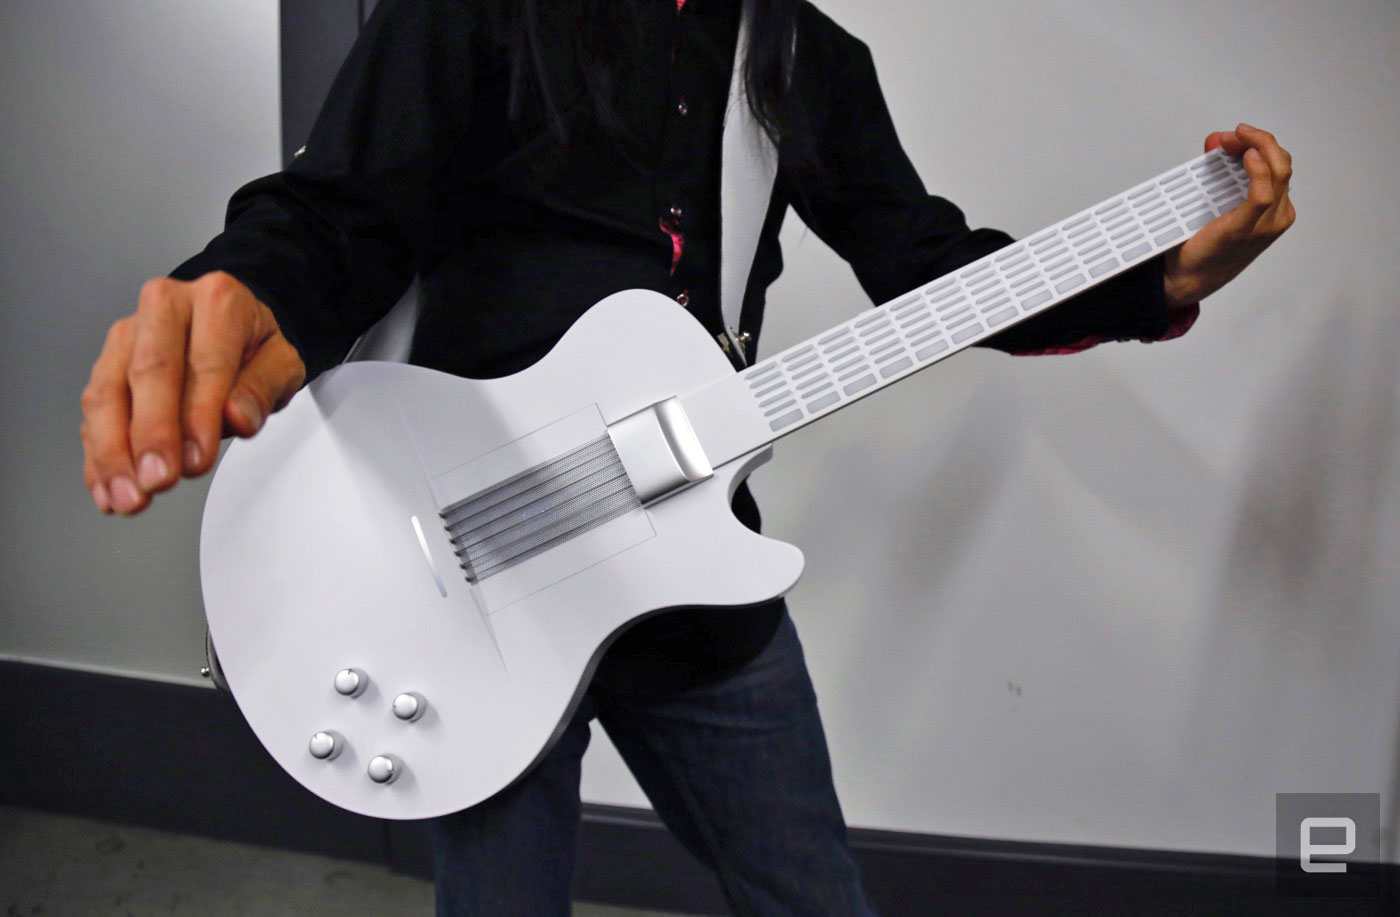 Magic Instruments Digital Guitar Makes It Easy For Anyone To Jam